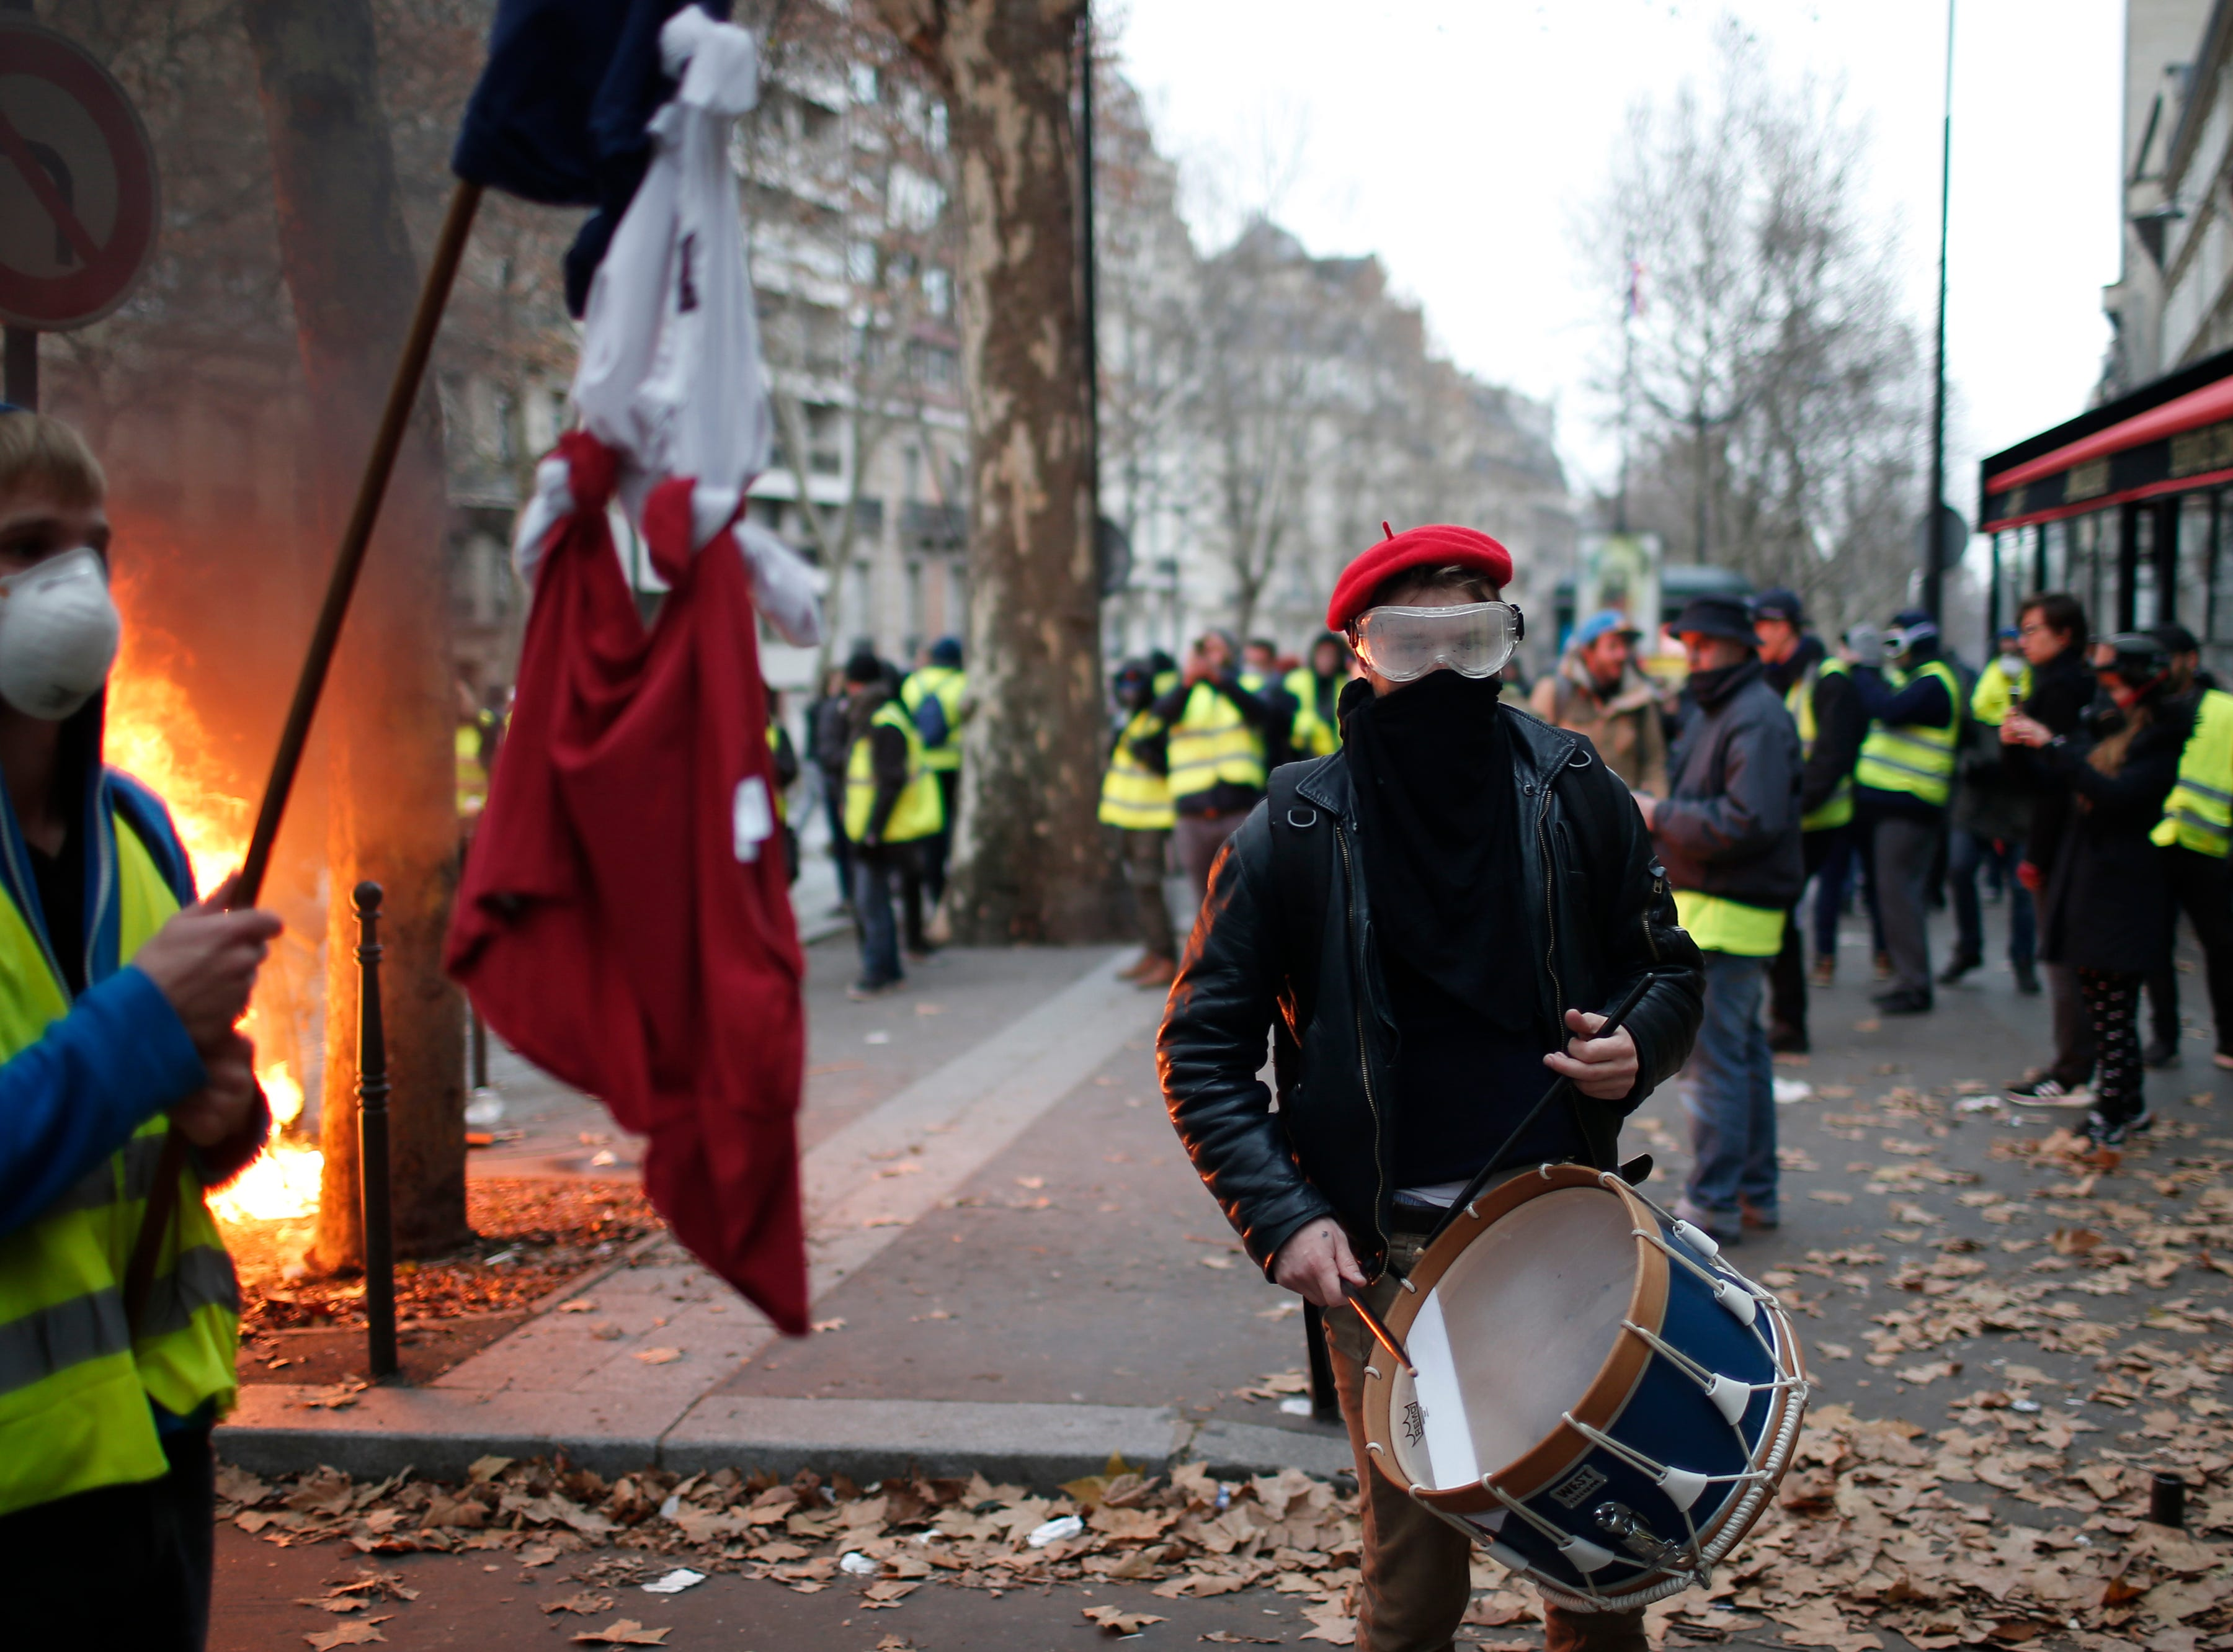 A demonstrator plays a drum Saturday, Dec. 8, 2018, in Paris. Crowds of yellow-vested protesters angry at President Emmanuel Macron and France's high taxes tried to converge on the presidential palace Saturday, some scuffling with police firing tear gas, amid exceptional security measures aimed at preventing a repeat of last week's rioting.